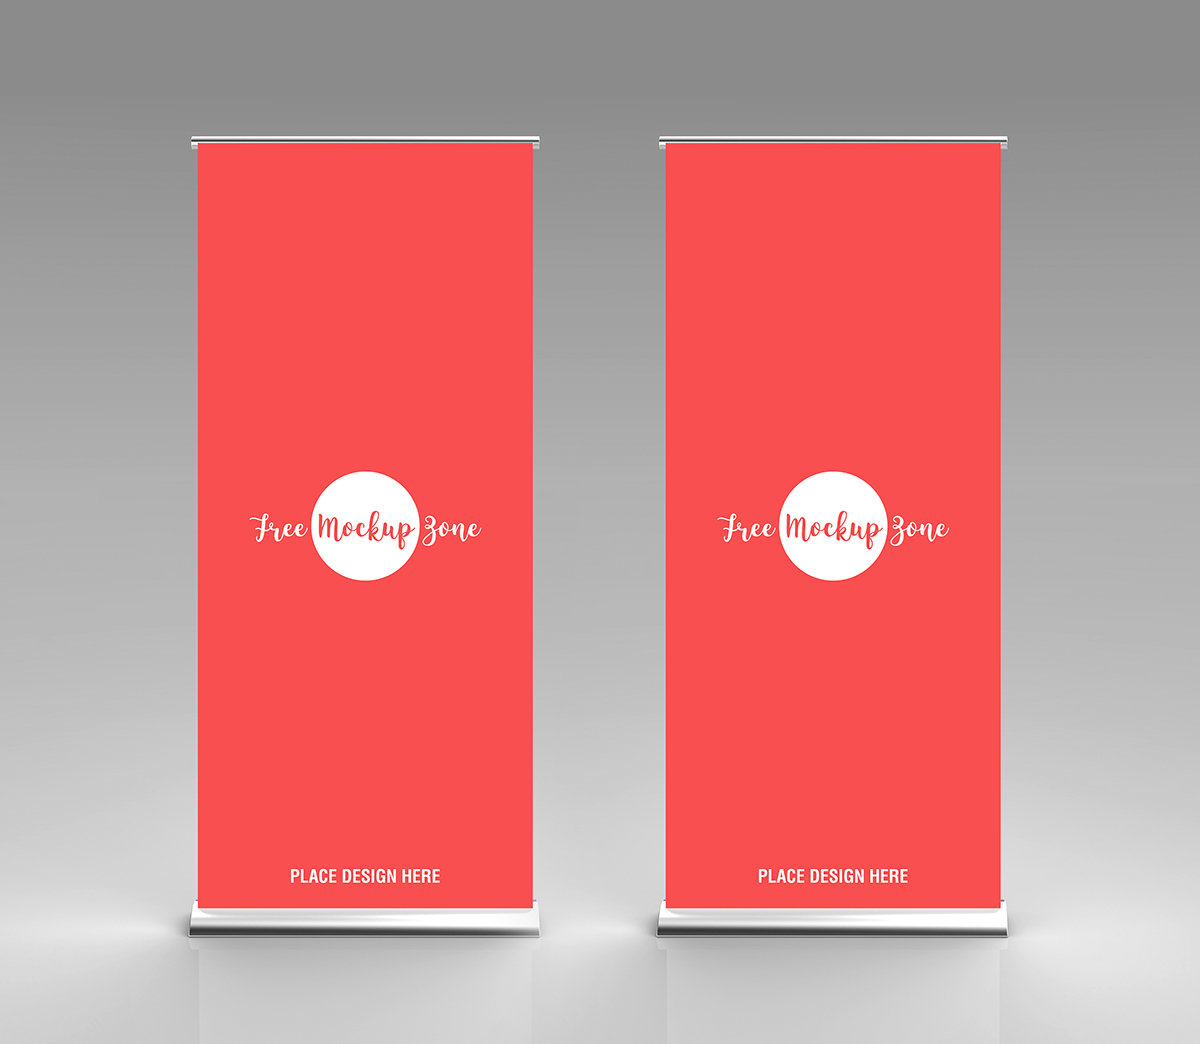 Free Rollup Stand - Standy Mockup For Advertisement